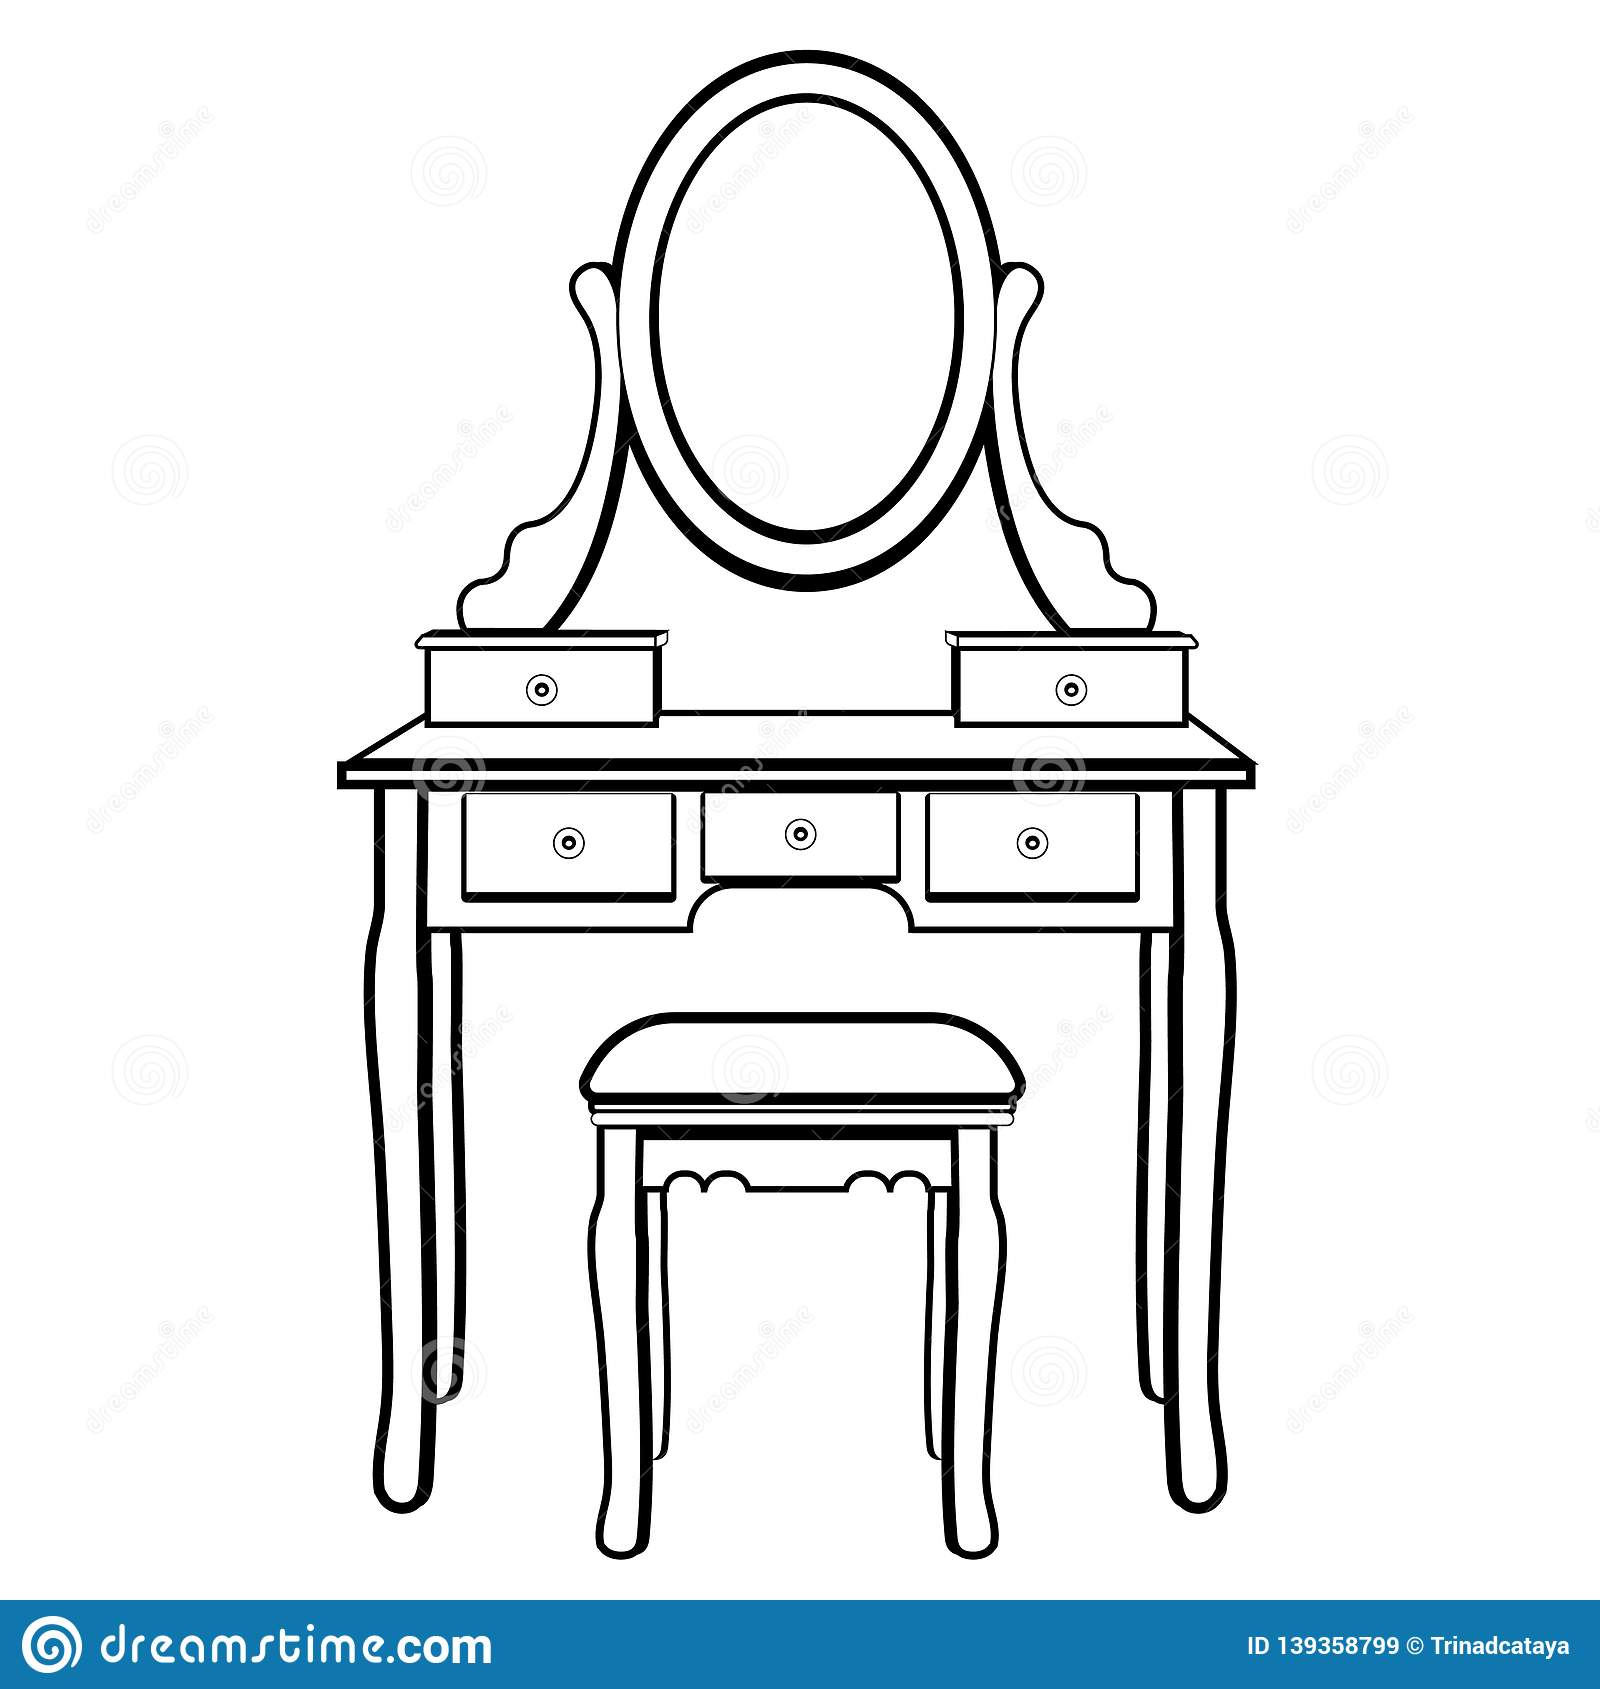 Dressing Table With Mirror Female Boudoir For Applying Makeup Coloring Sketch Contour Black And White Drawing Vector Illustra Stock Vector Illustration Of Contour Dressing 139358799